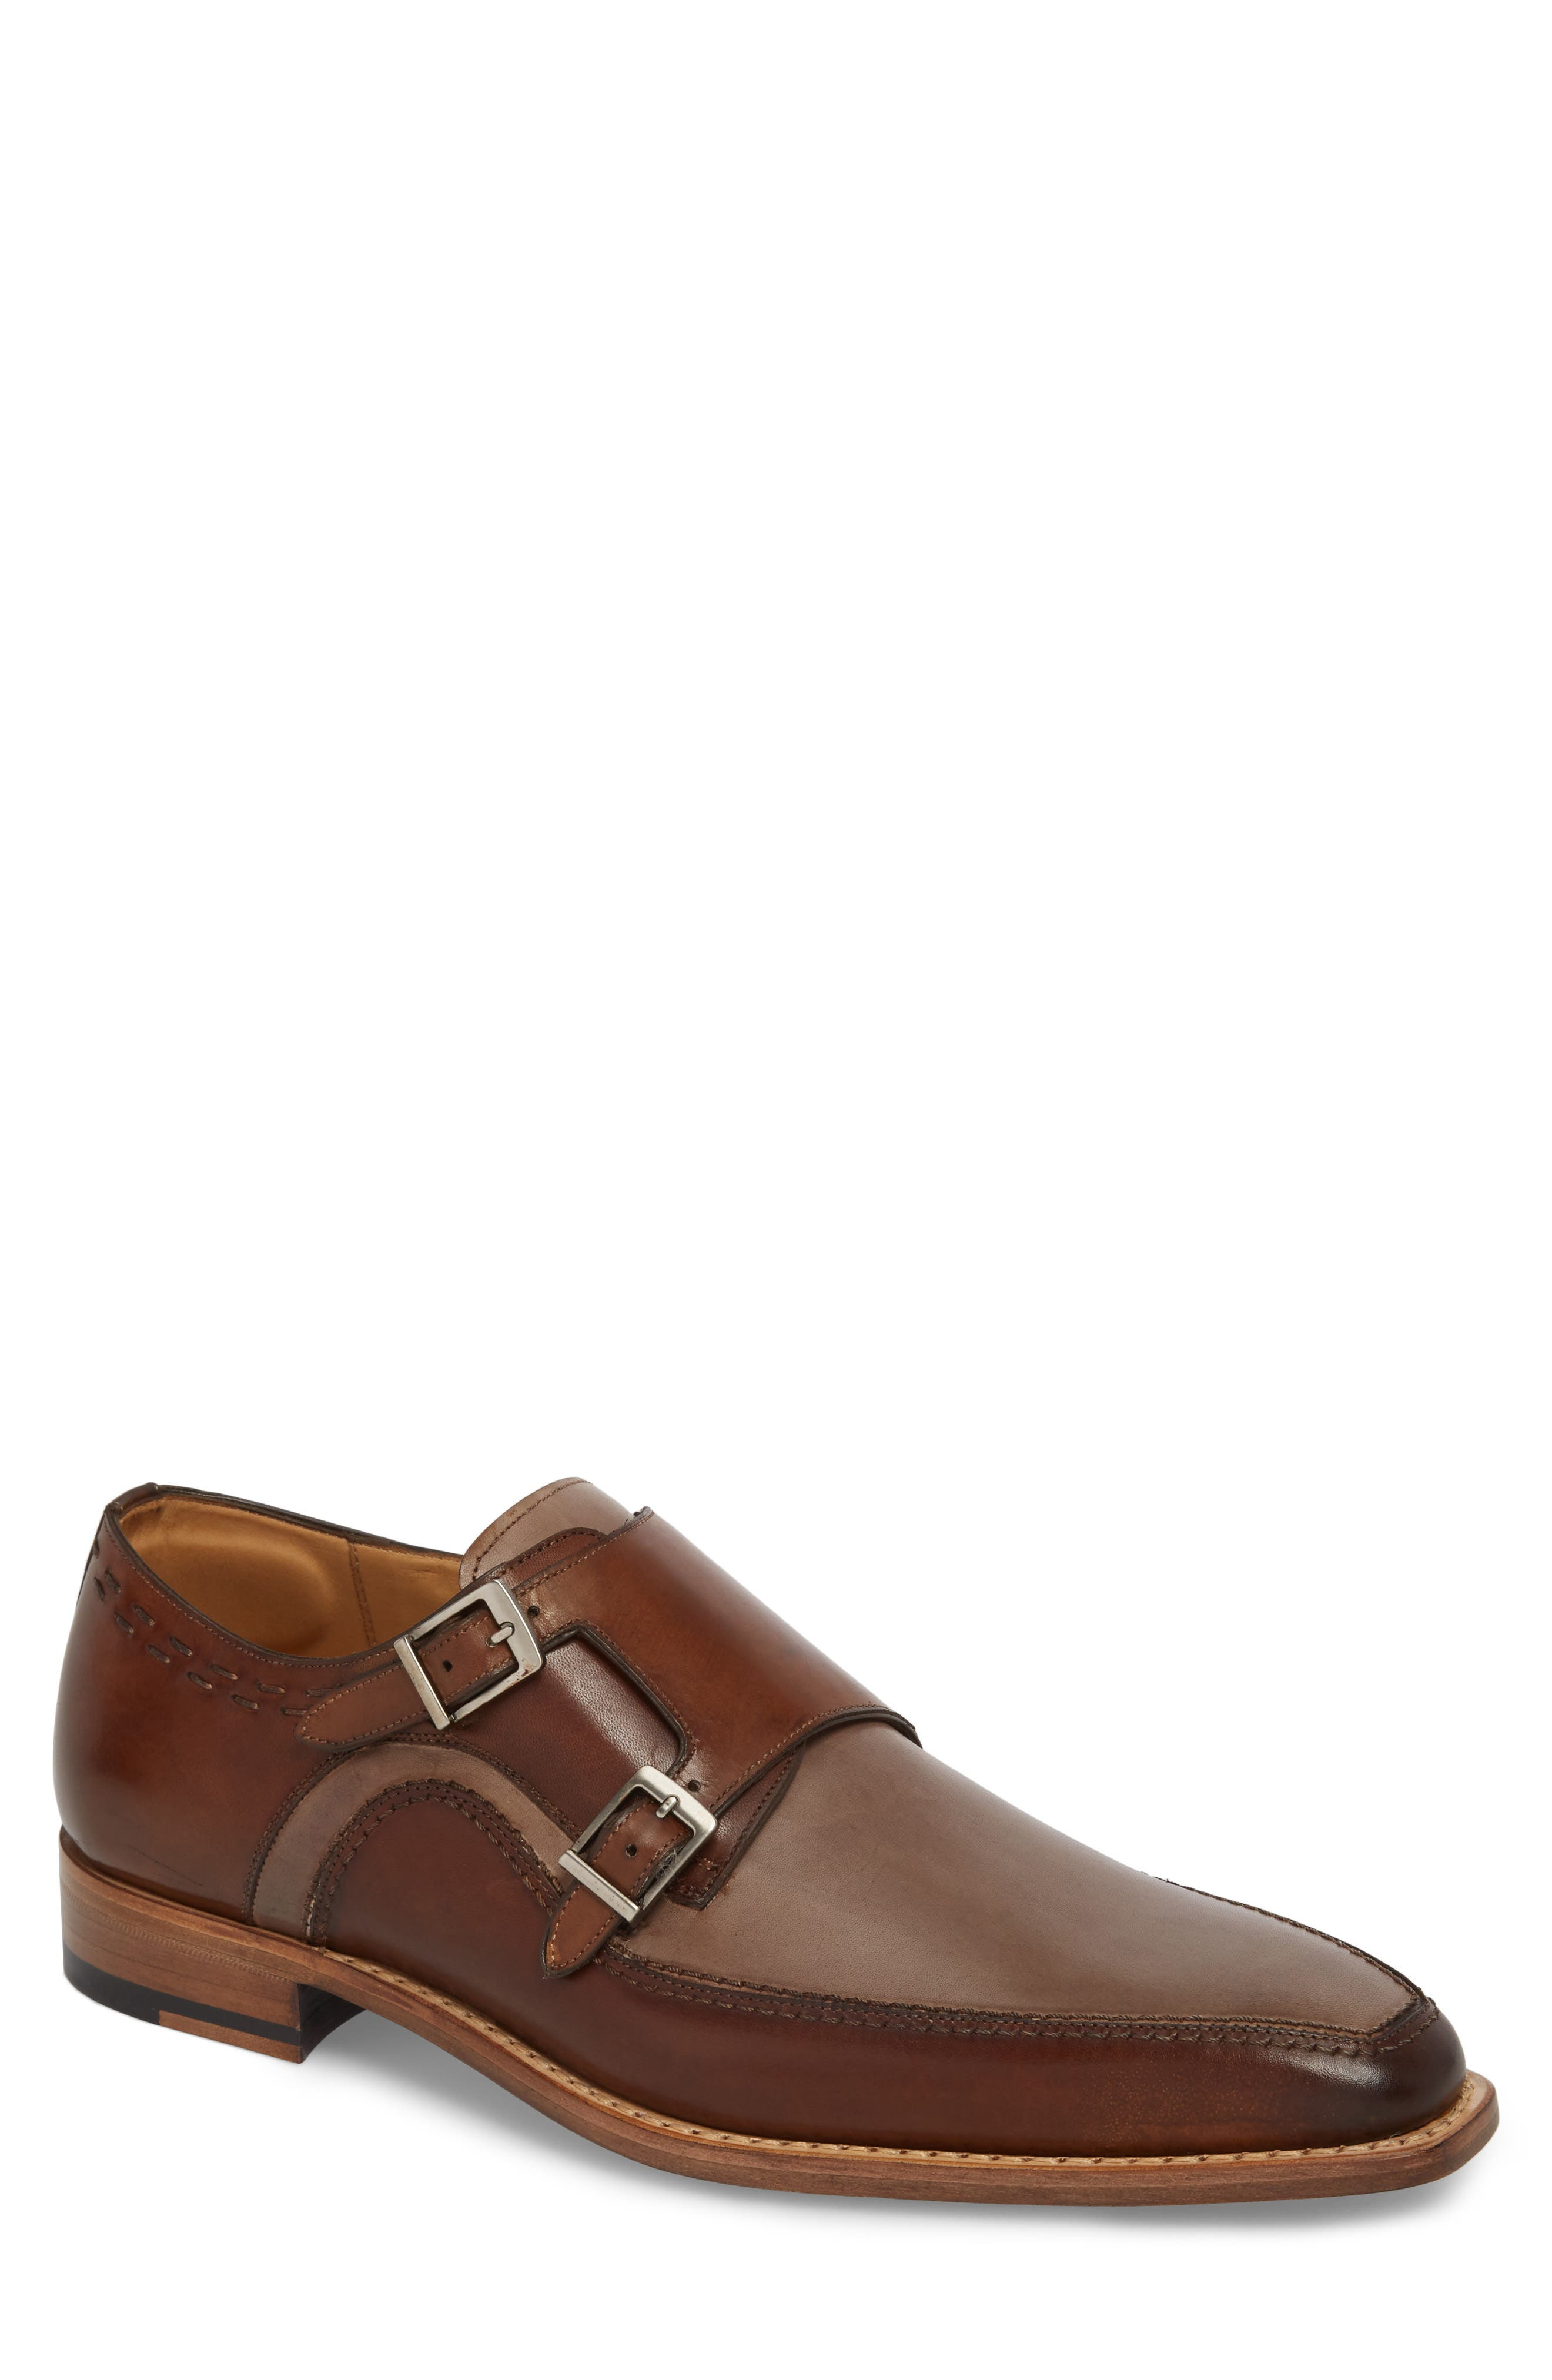 Magno Double Monk Strap Shoe,                         Main,                         color, Brown Leather